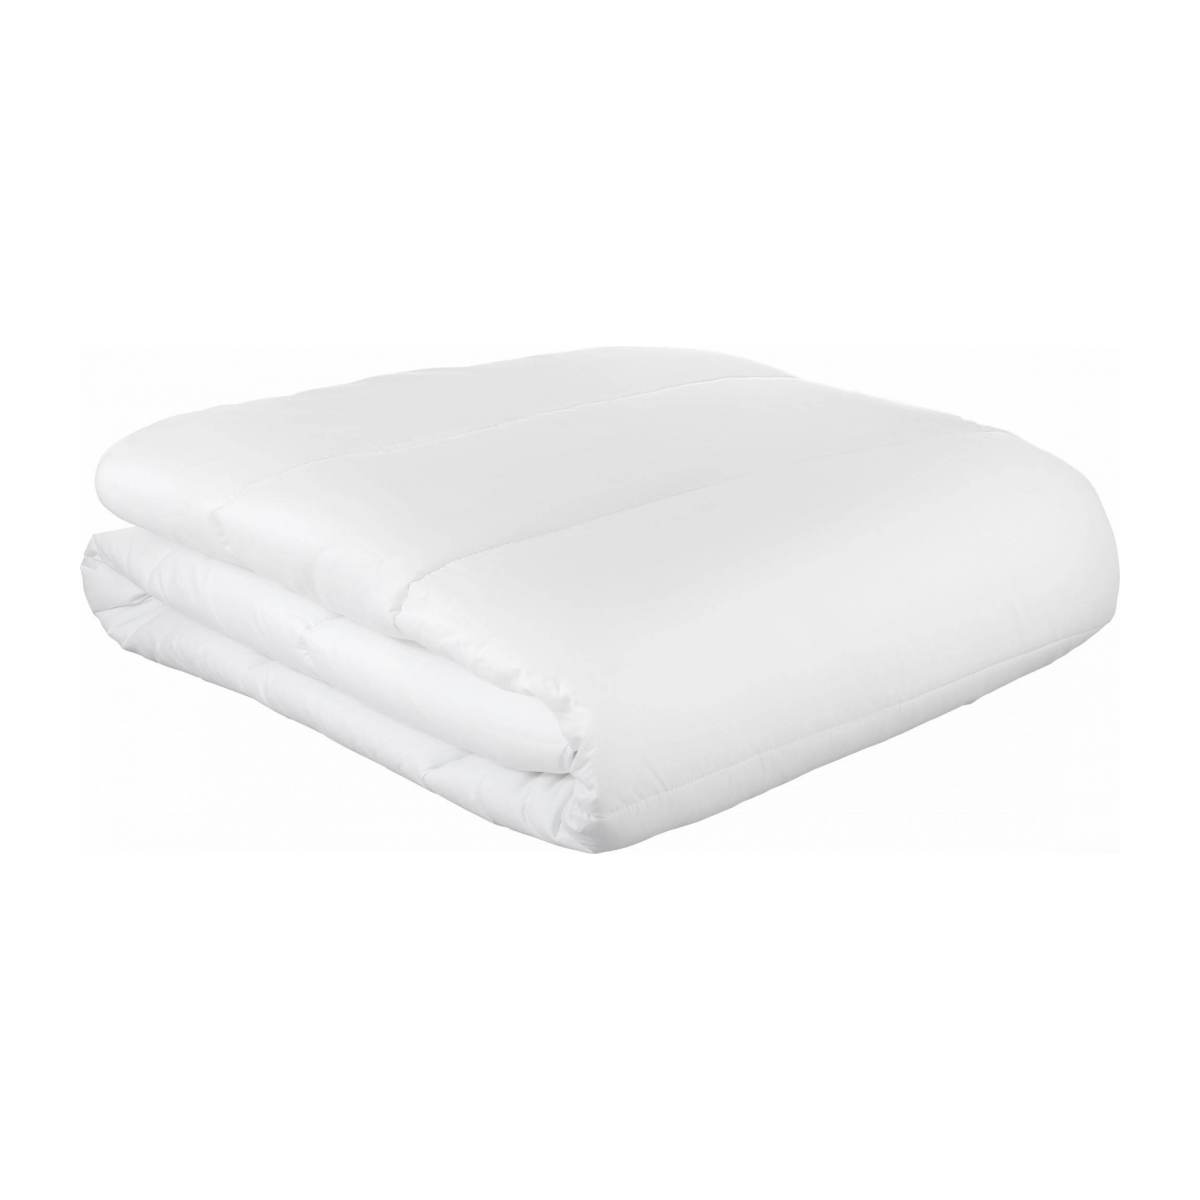 Couette 240x220cm, 400g blanche n°1